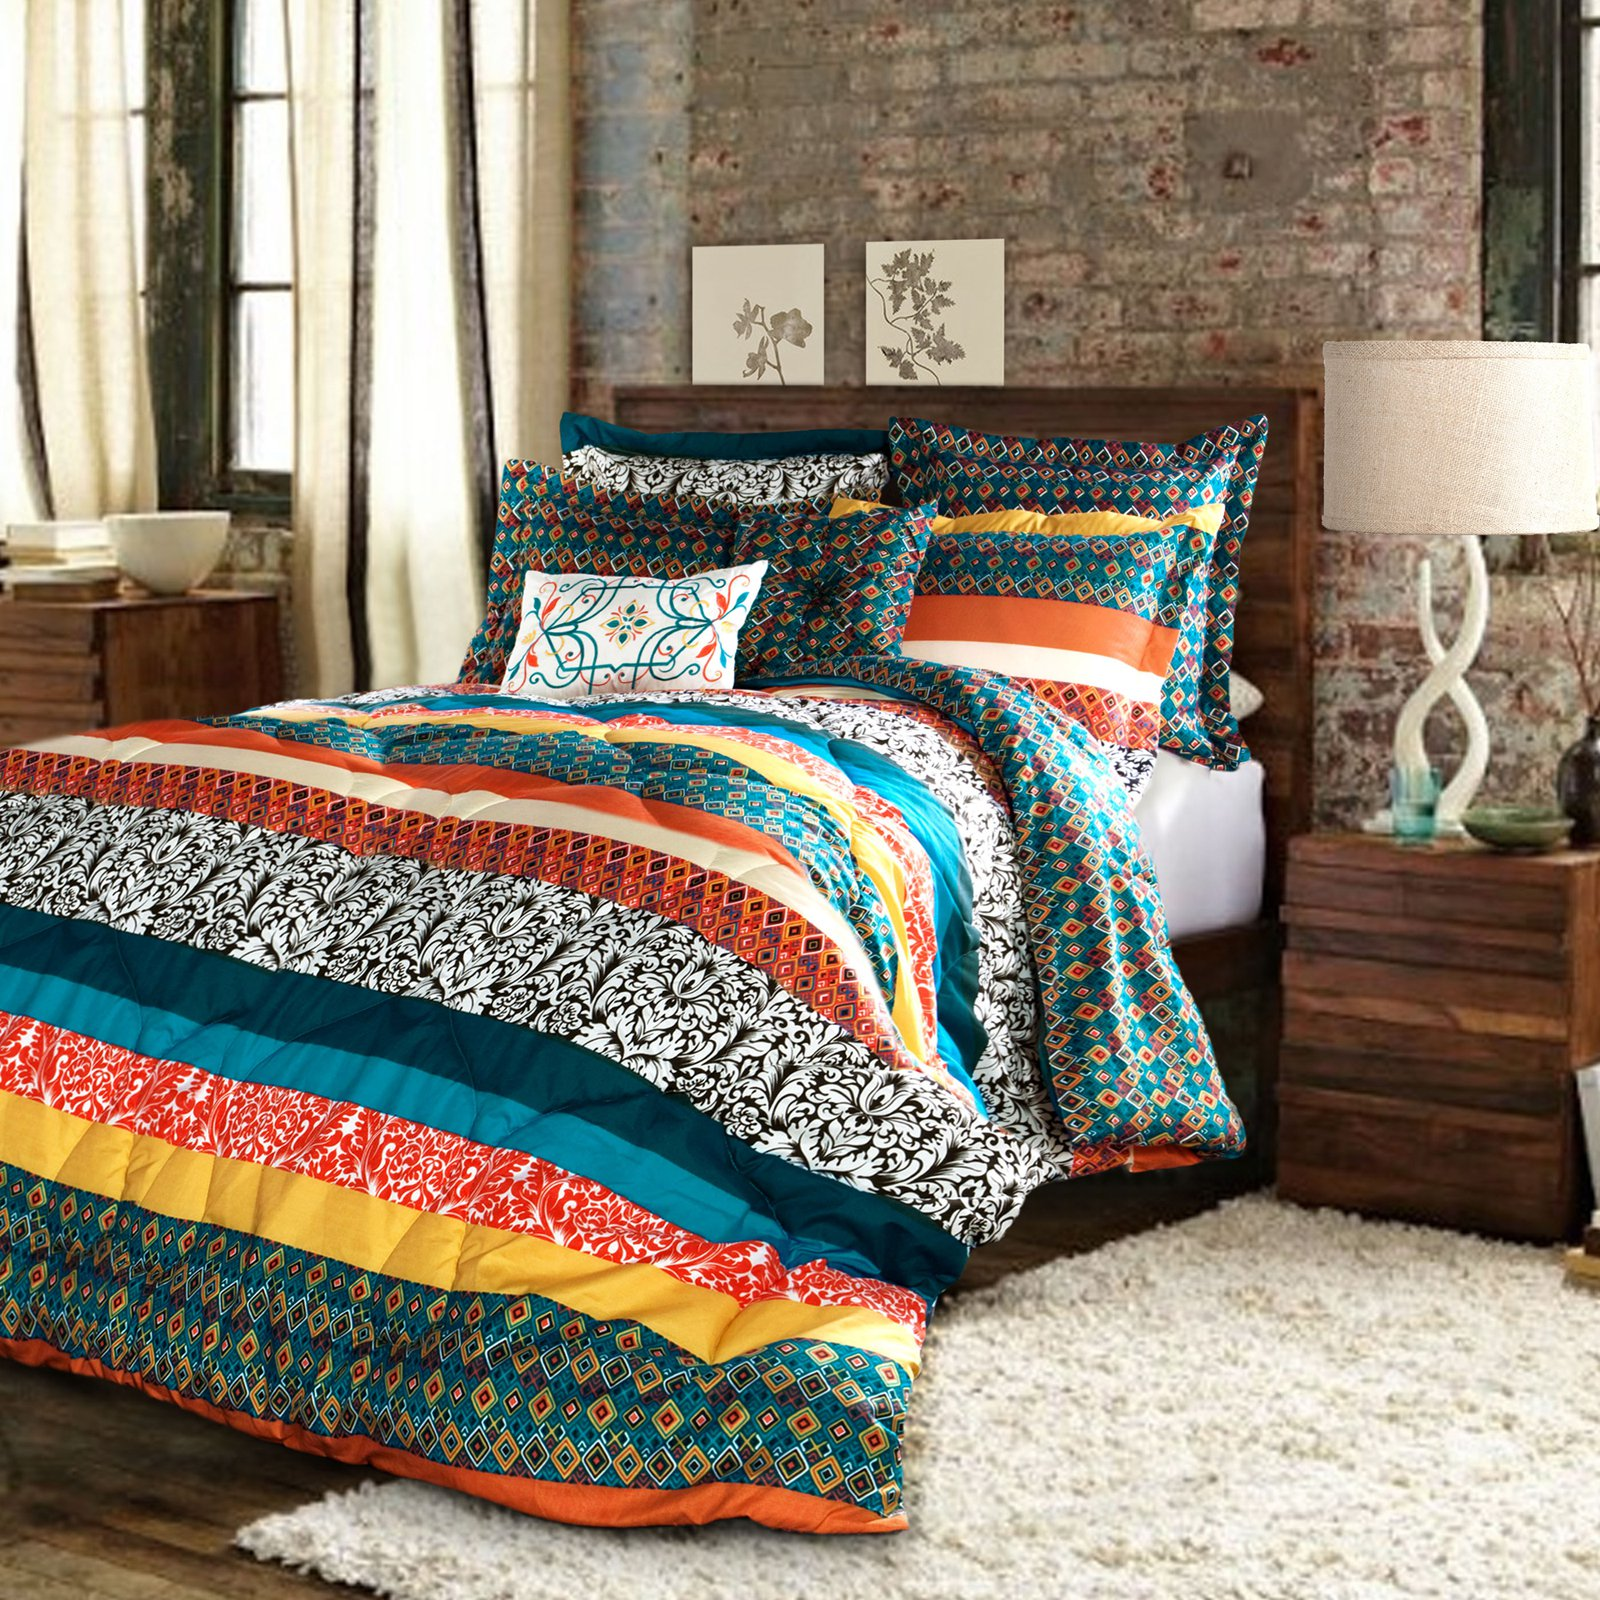 duvet a upgrade king boho bull chic comforter dream twinfull to sugar skull set beddings fullxfull single cover bedding products queen catcher il bohemian bed